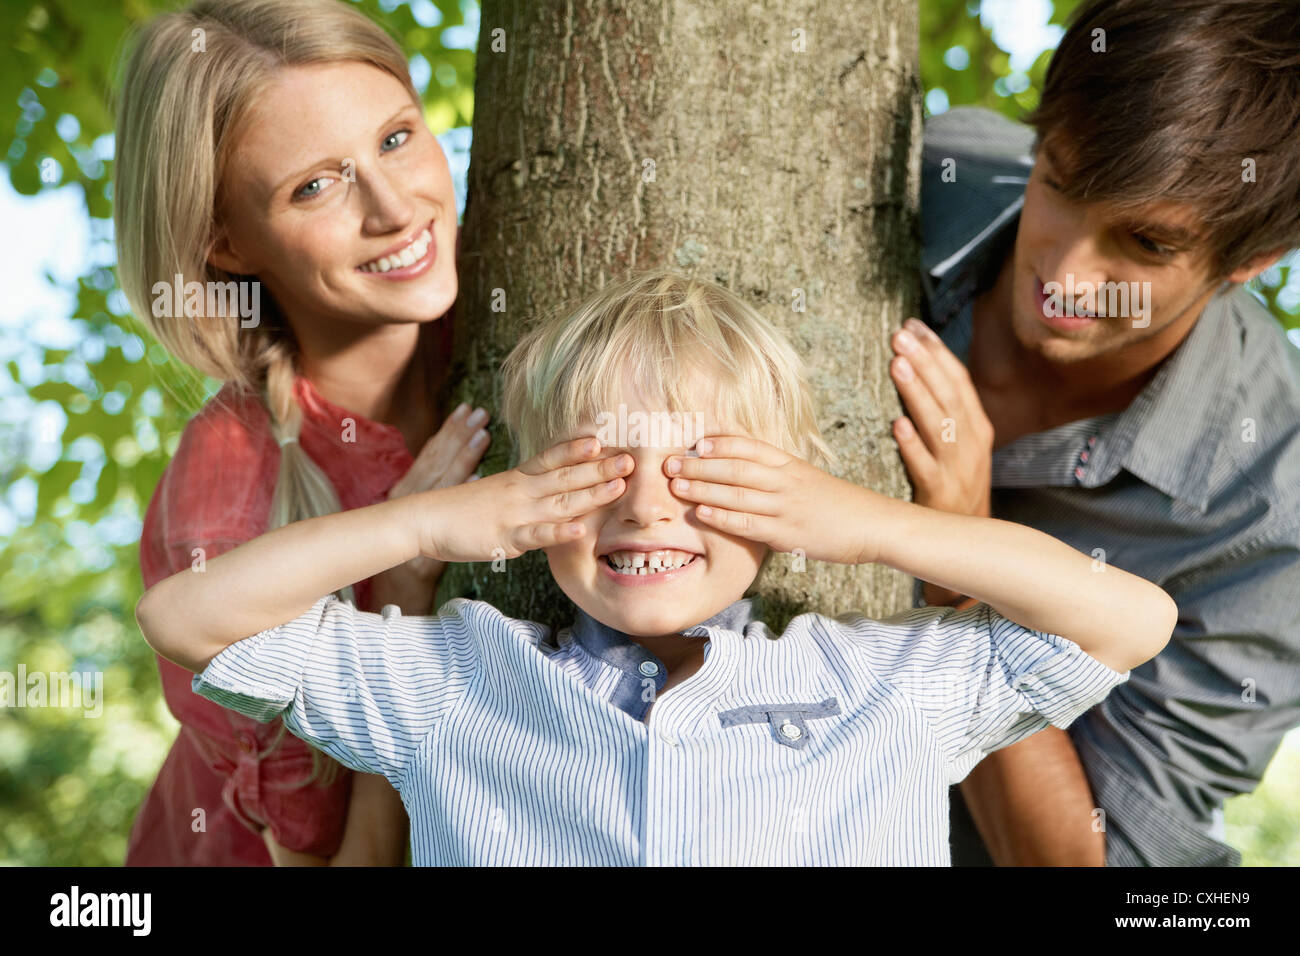 Germany, Cologne, Boy playing hide and seek with parents - Stock Image